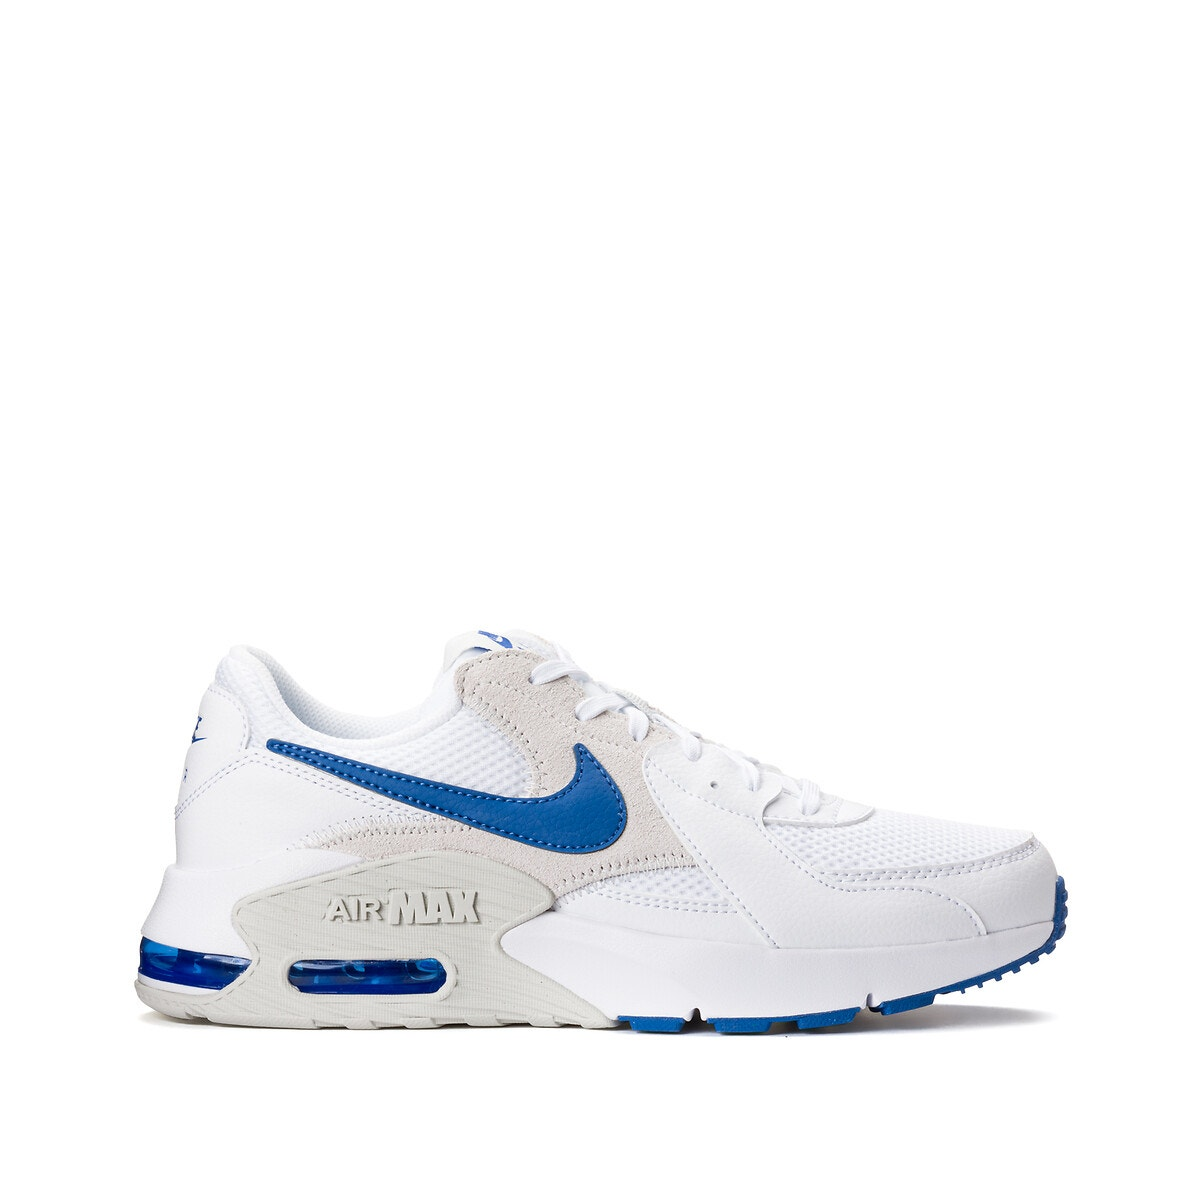 Air max bw cuir homme | La Redoute